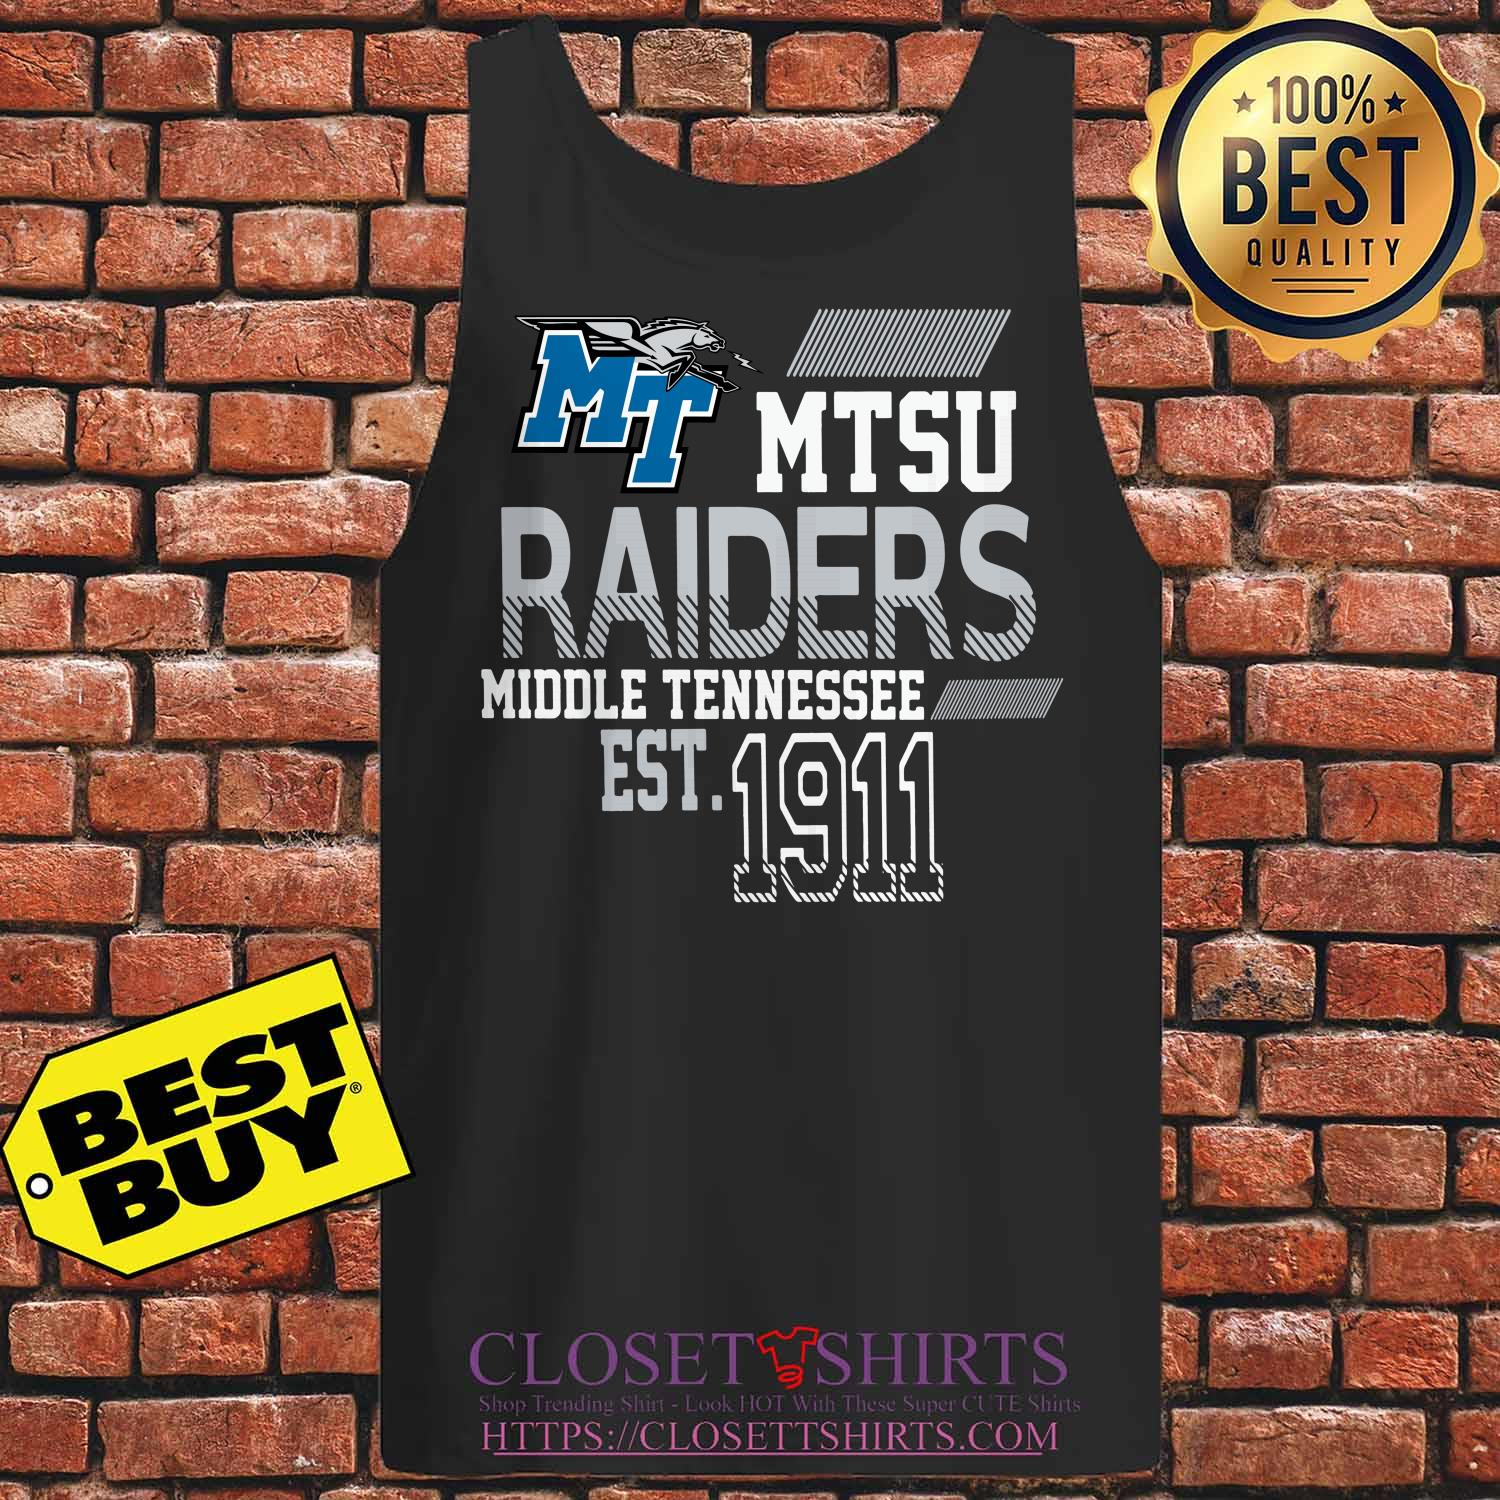 Mtsu Raiders Middle Tennessee Est.1911 tank top